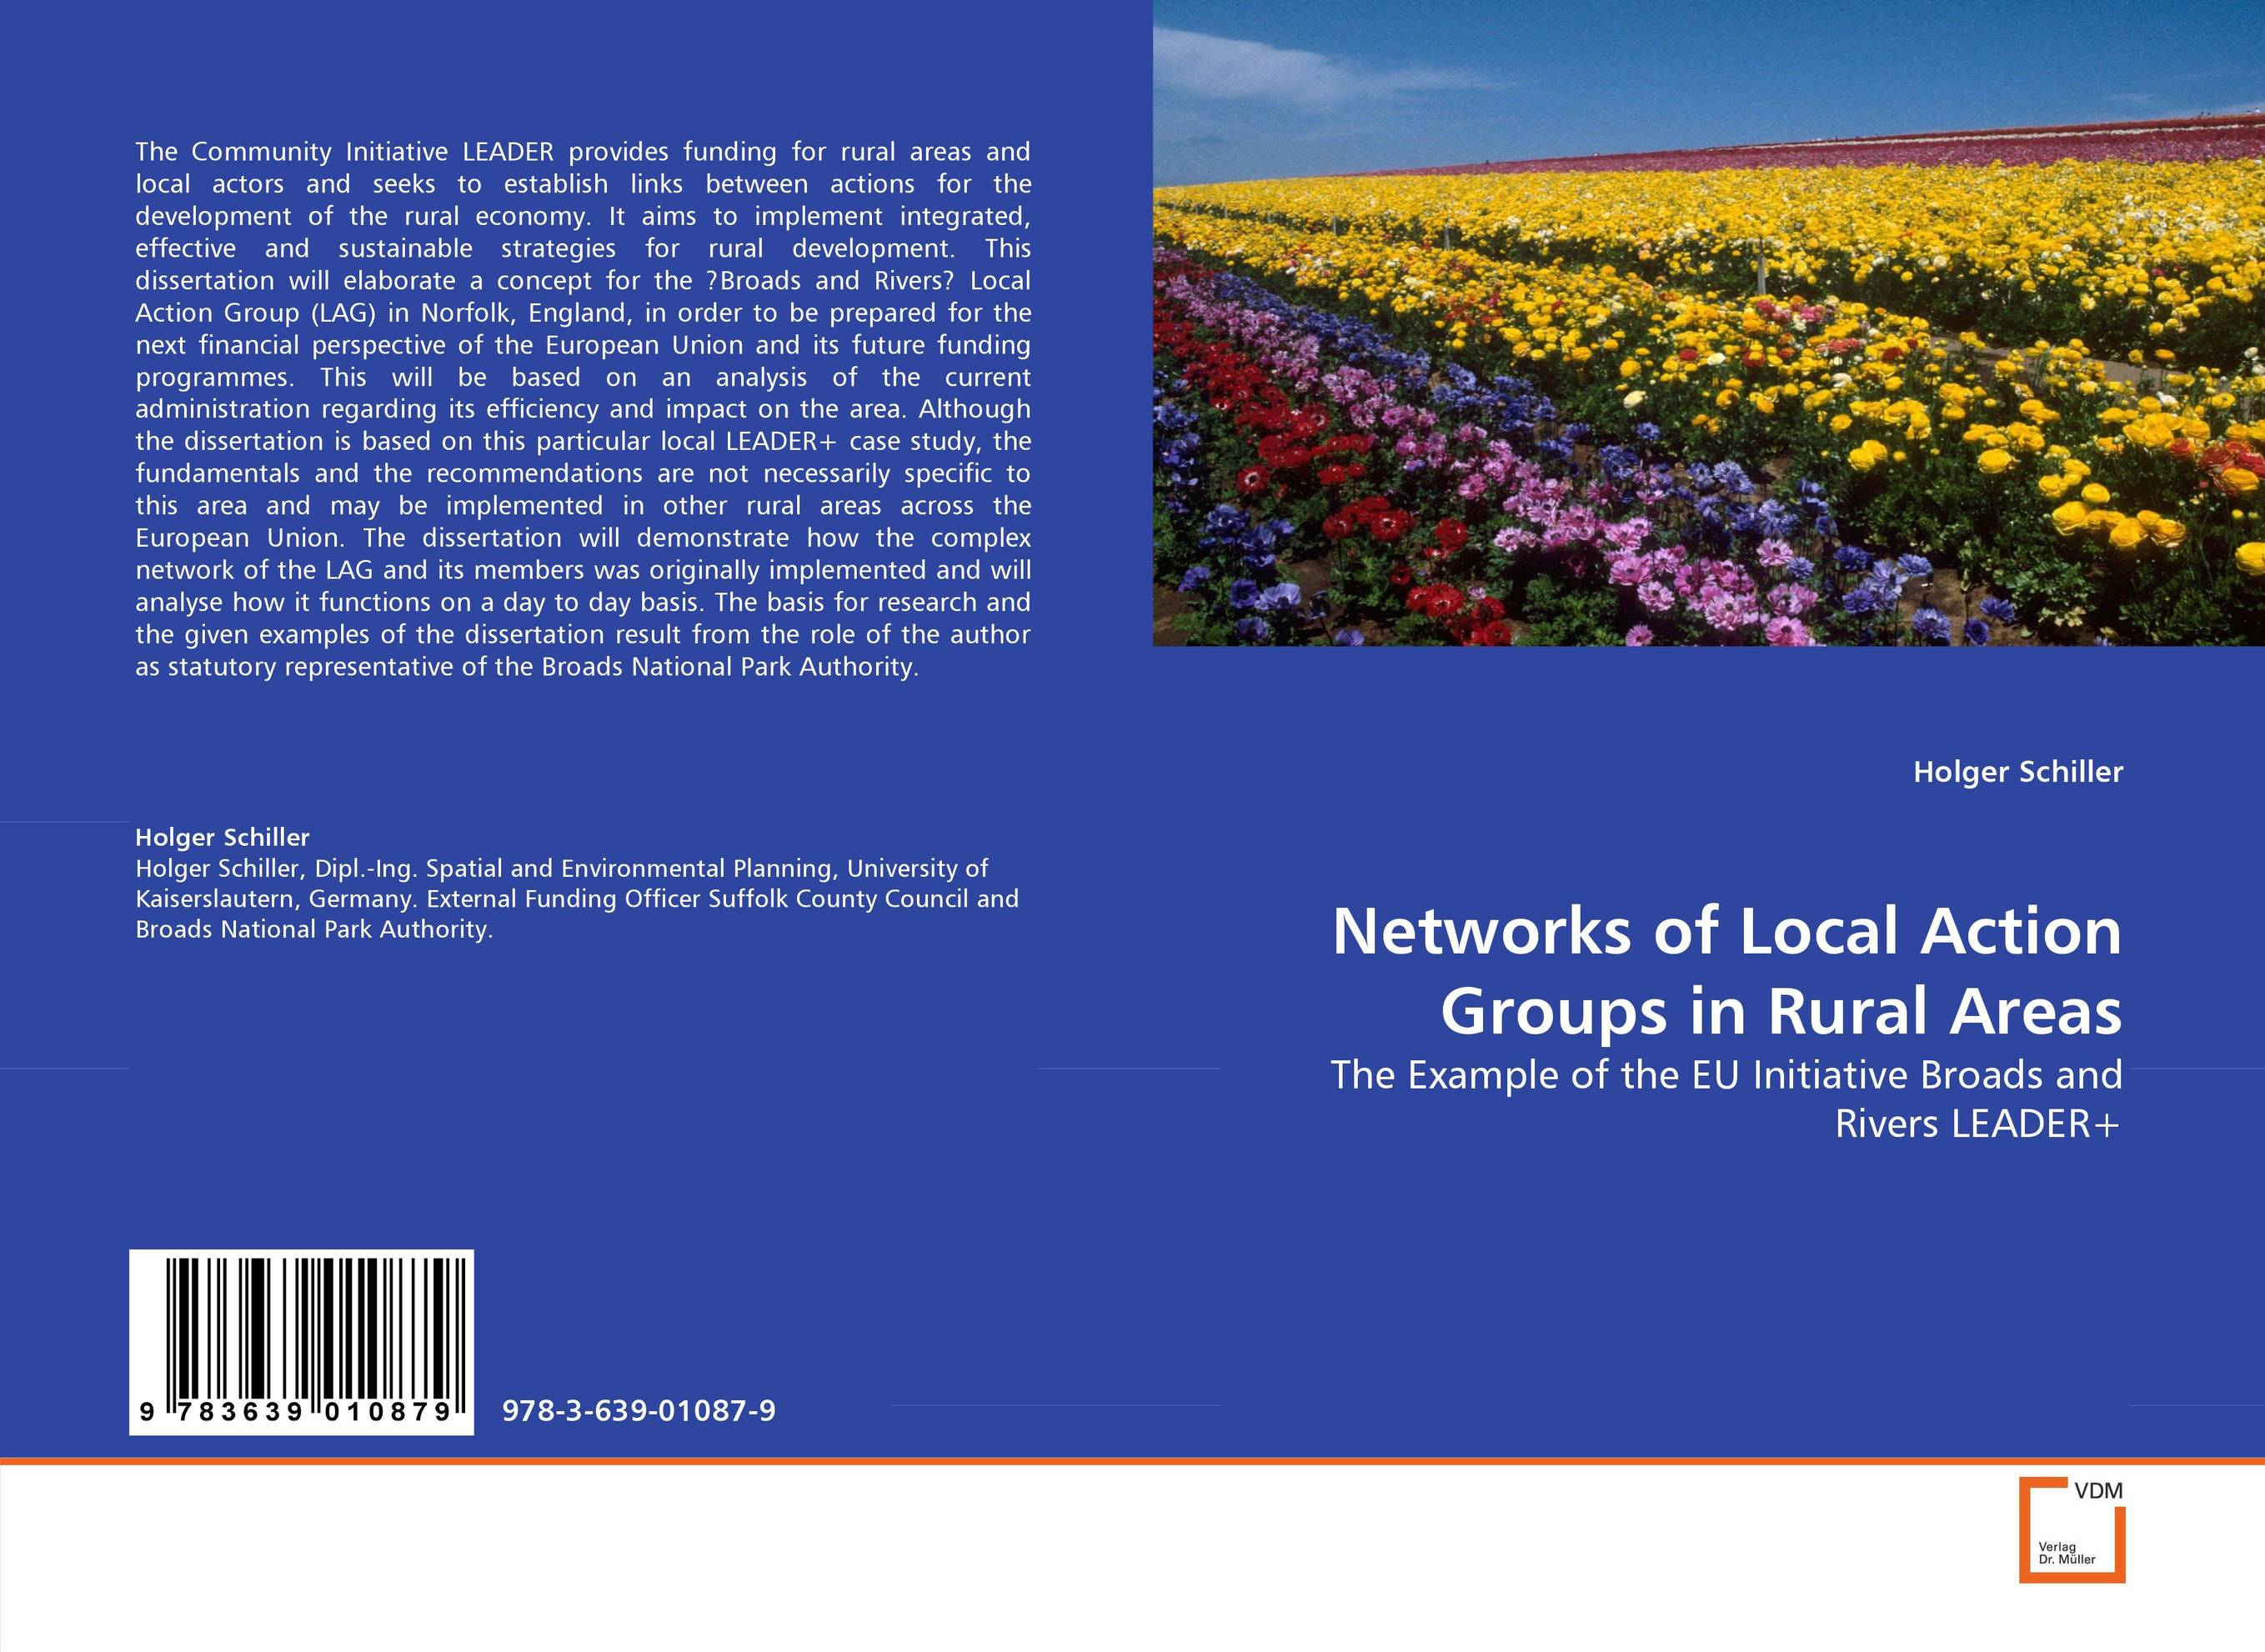 Networks of Local Action Groups in Rural Areas